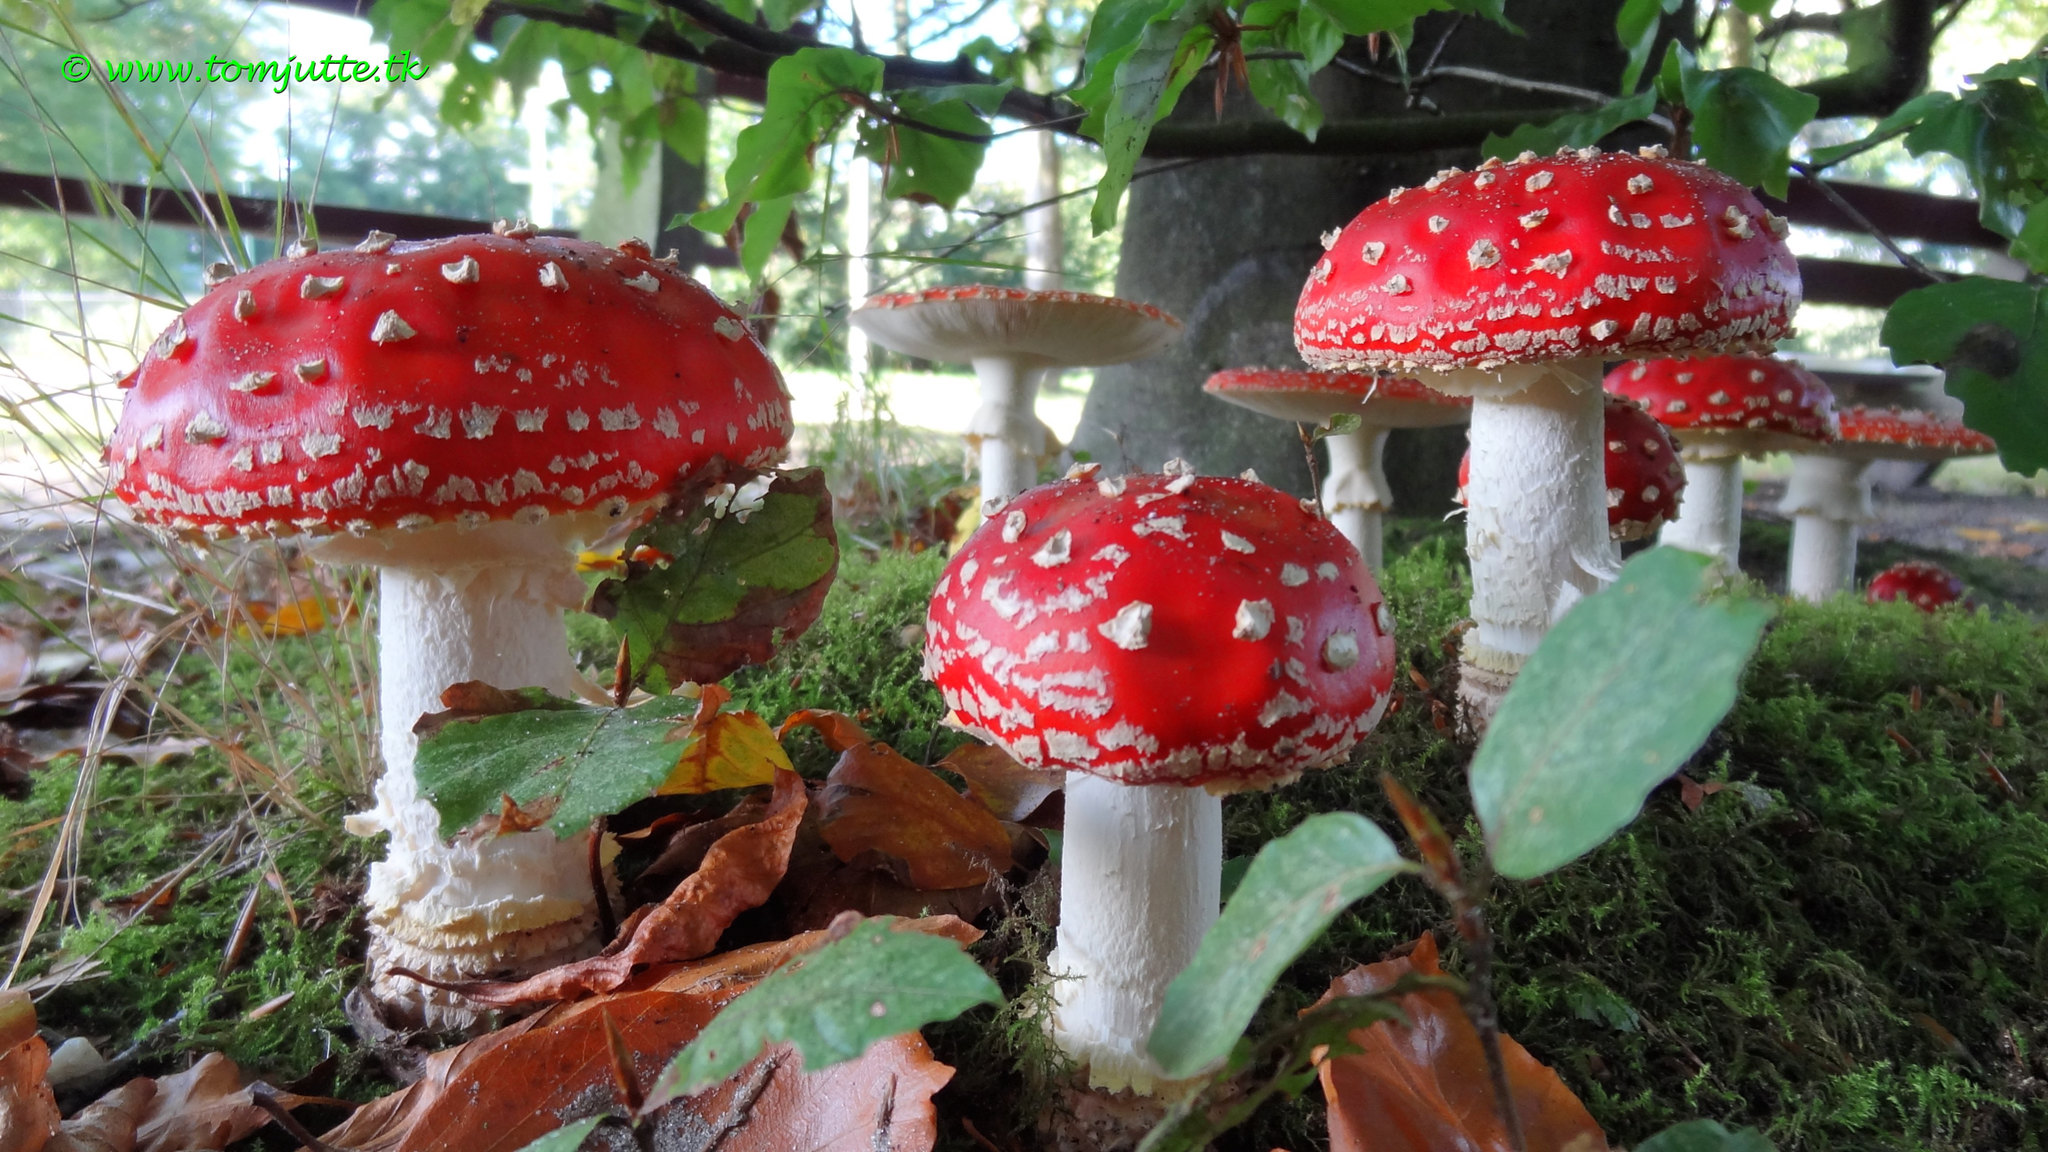 Red toadstools with white spots and white stems